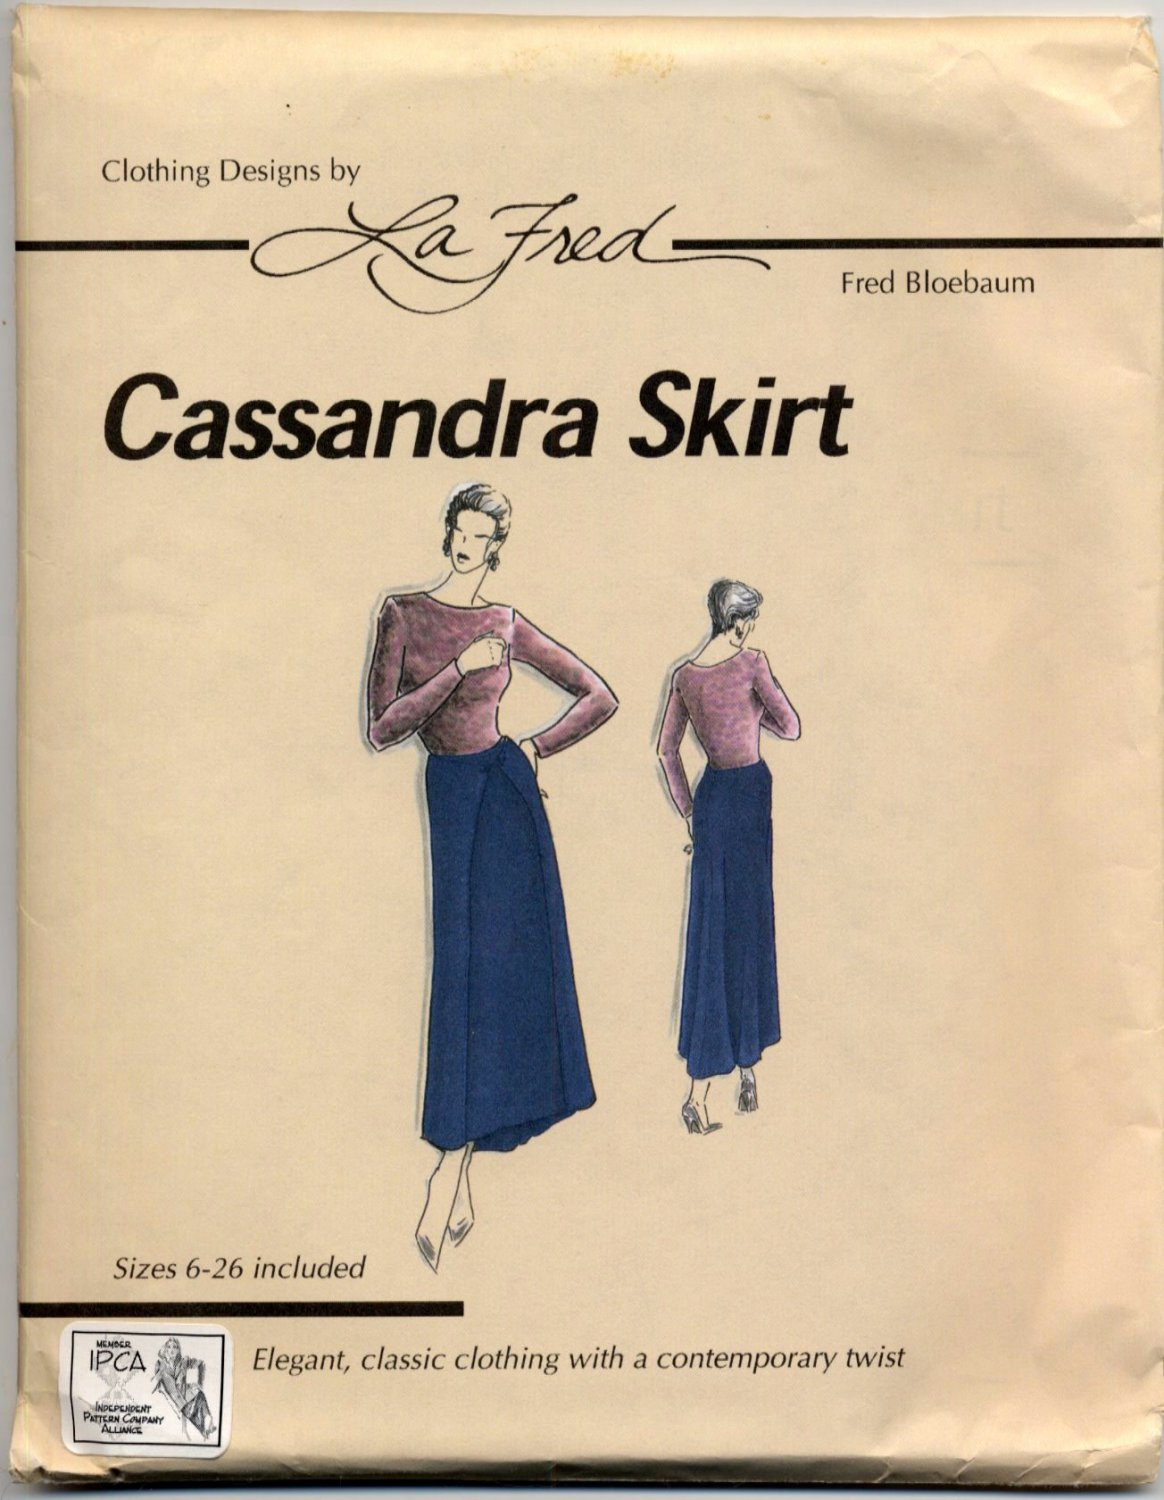 La Fred 101 Cassandra Skirt Sewing Pattern - Misses' 6 - 26 - Fitted Paneled Wrap Skirt